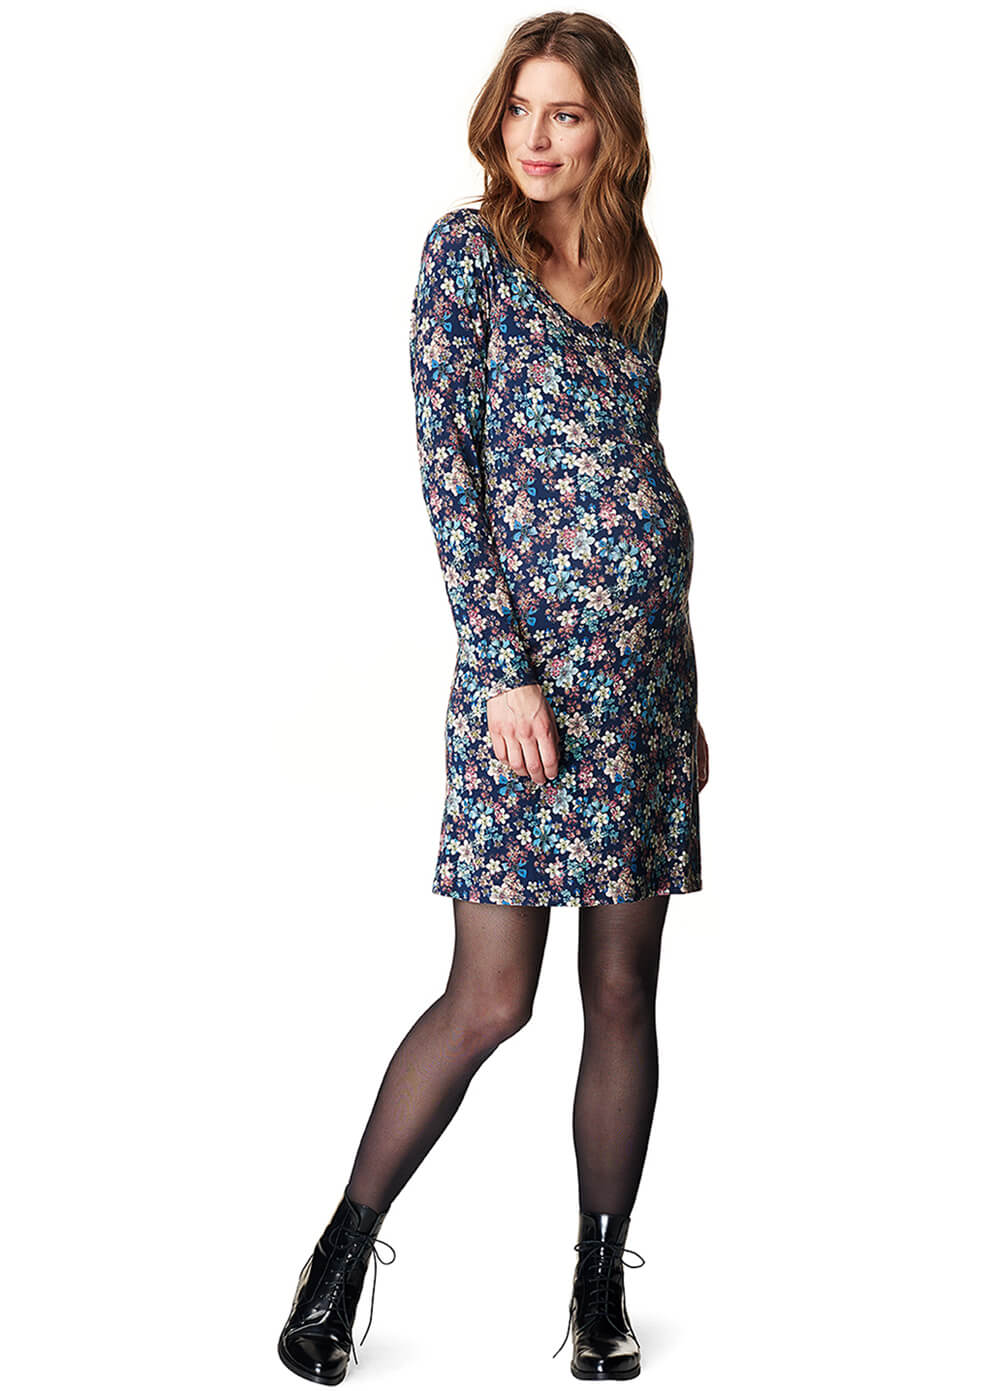 Zip Front Maternity Nursing Dress in Navy Floral by Esprit